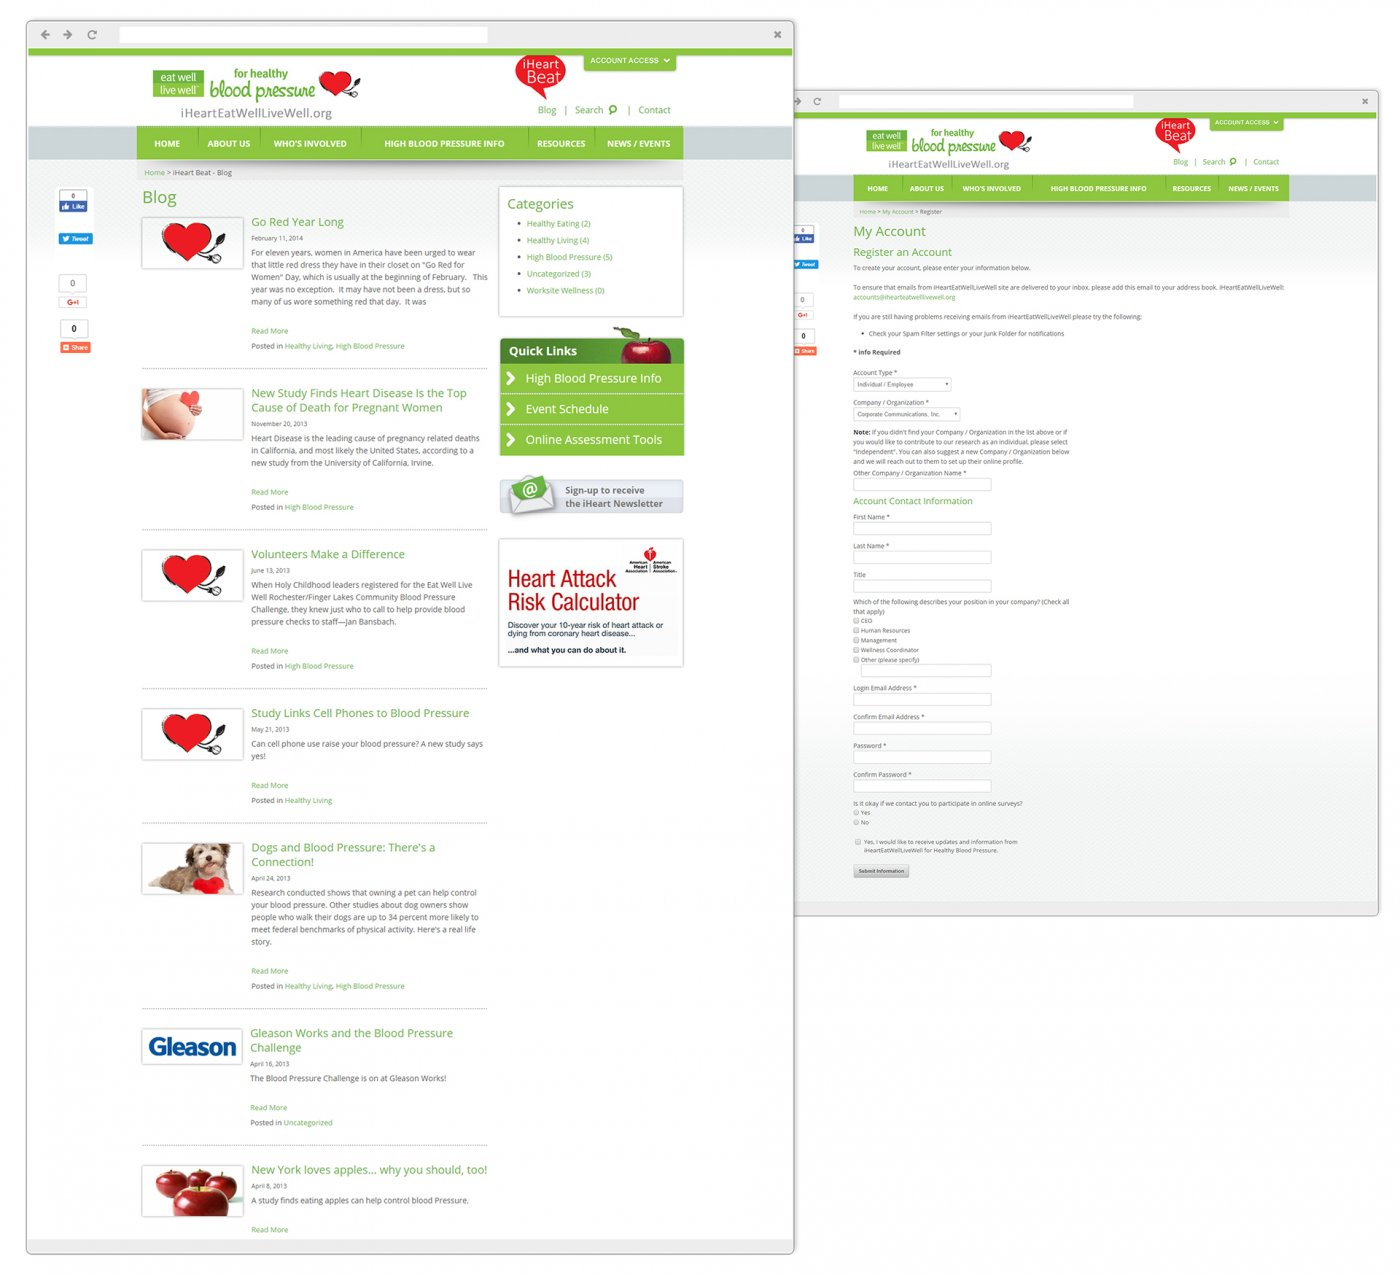 iHeart EatWell LiveWell Personalized Online Account System and Blogs